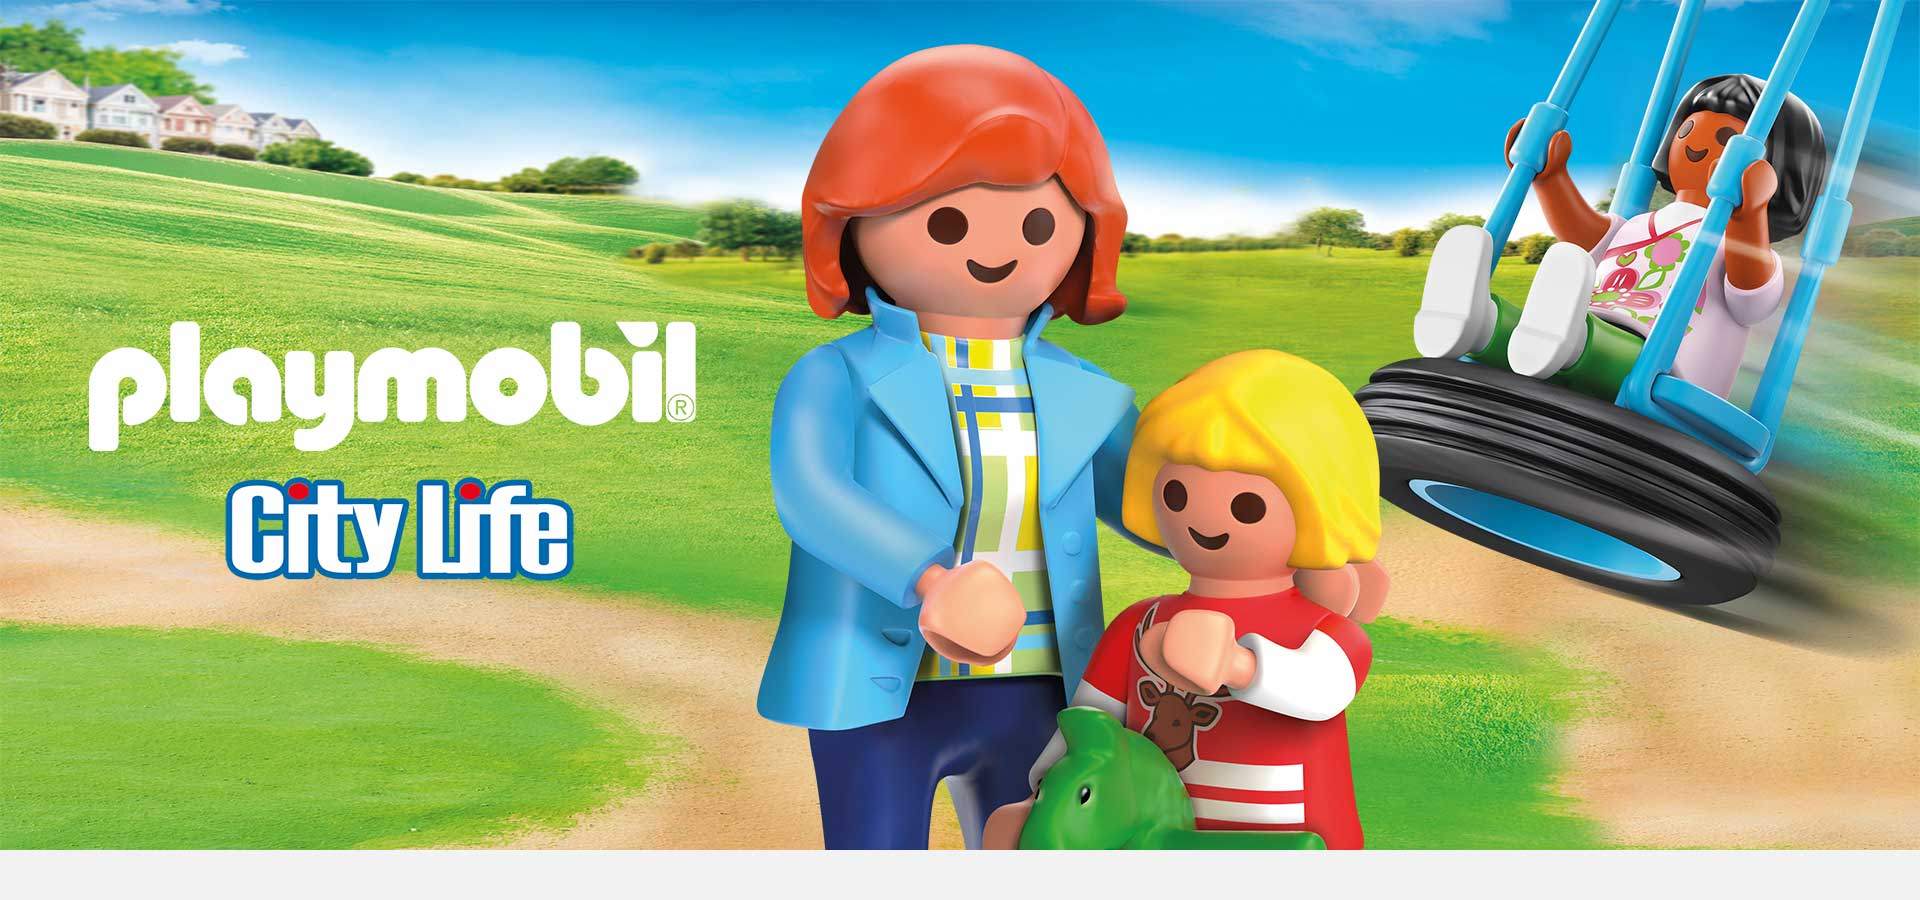 Playmobil City Life Banner.jpg